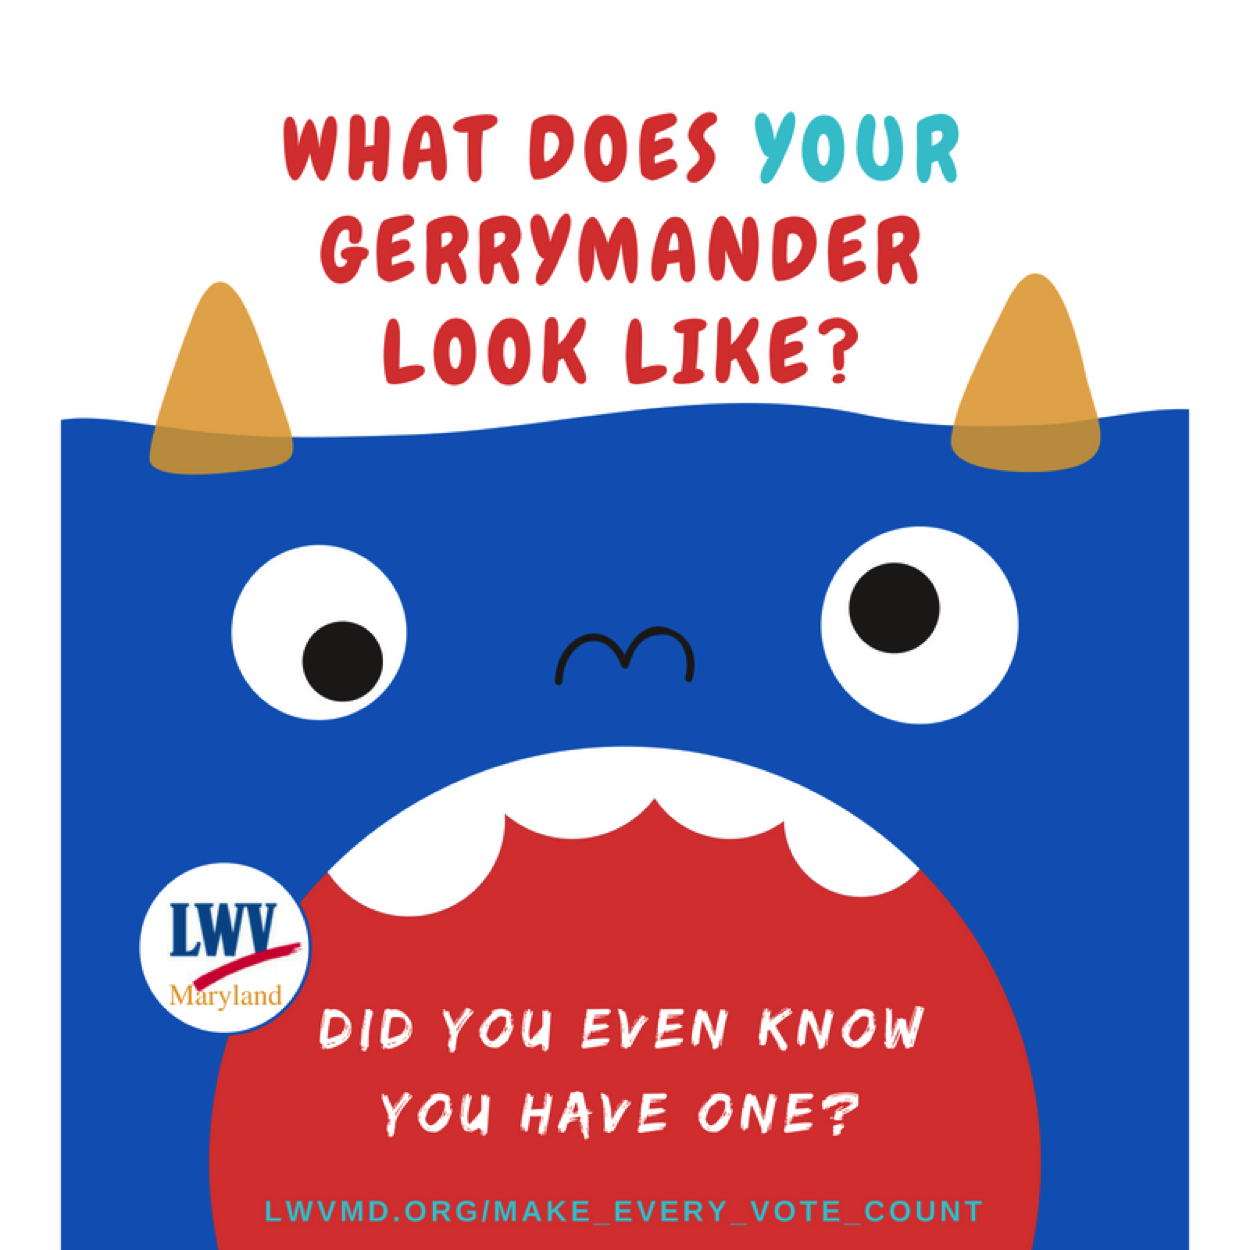 What does your gerrymander look like?